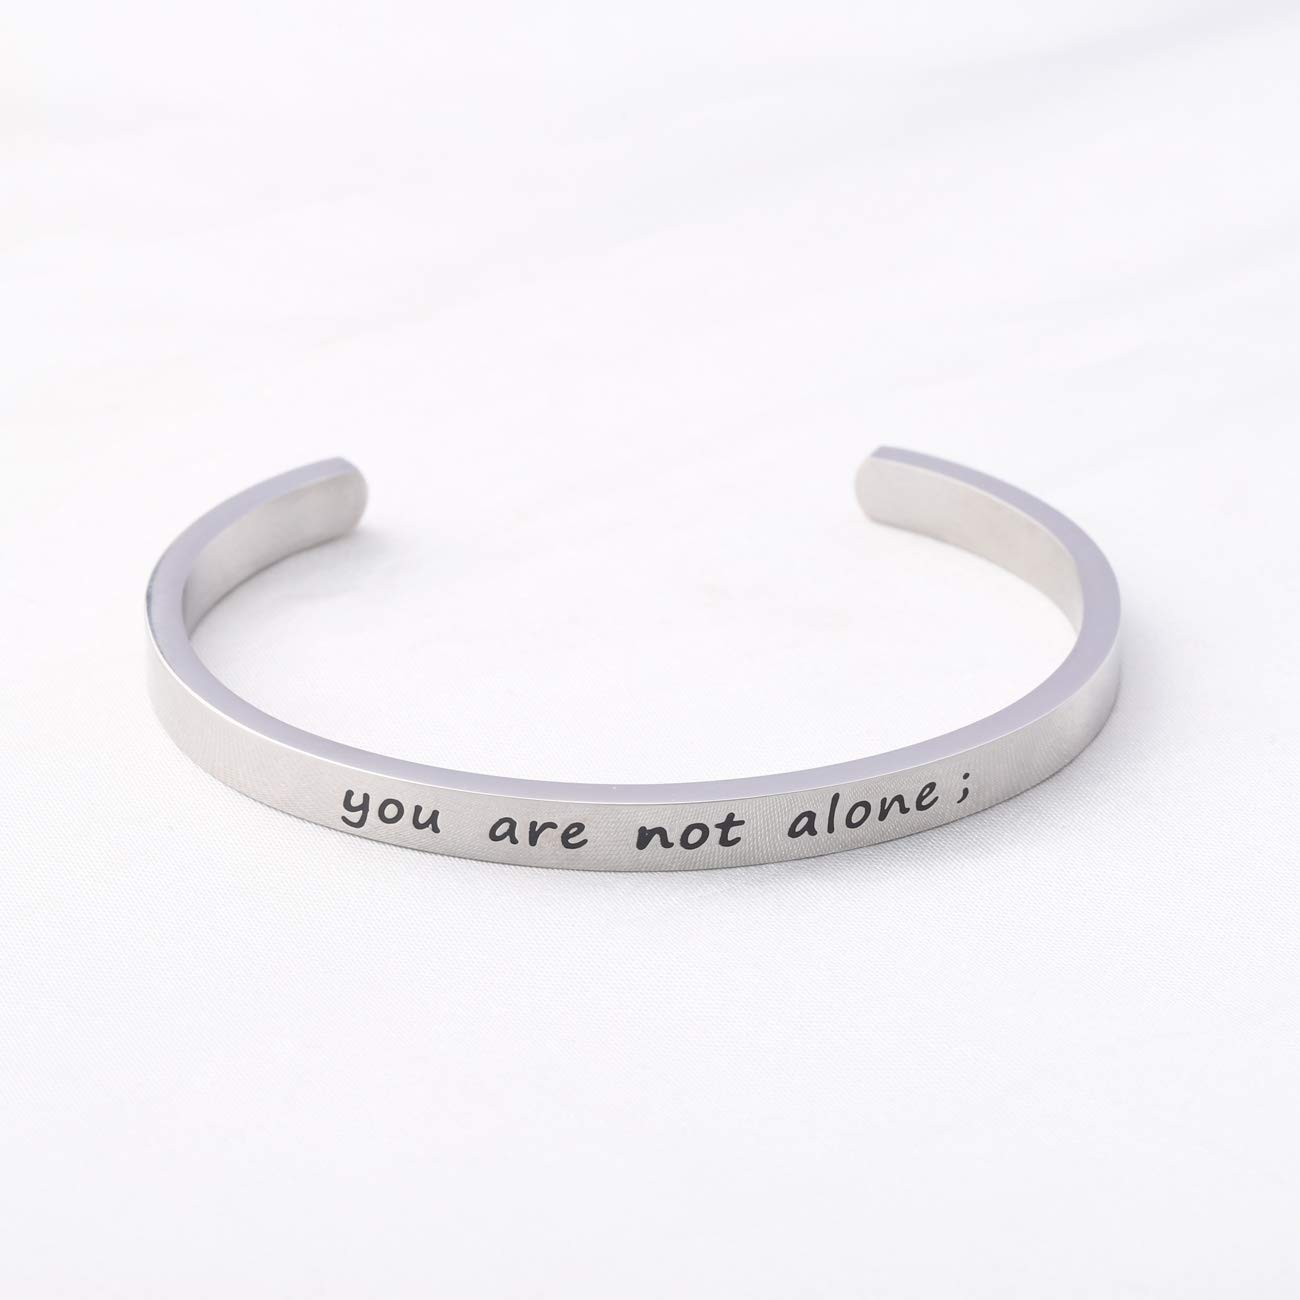 WUSUANED Friendship Bracelet You are Not Alone Cuff Bracelet Inspirational Quote Jewelry Encouragement Gift for Best Friend